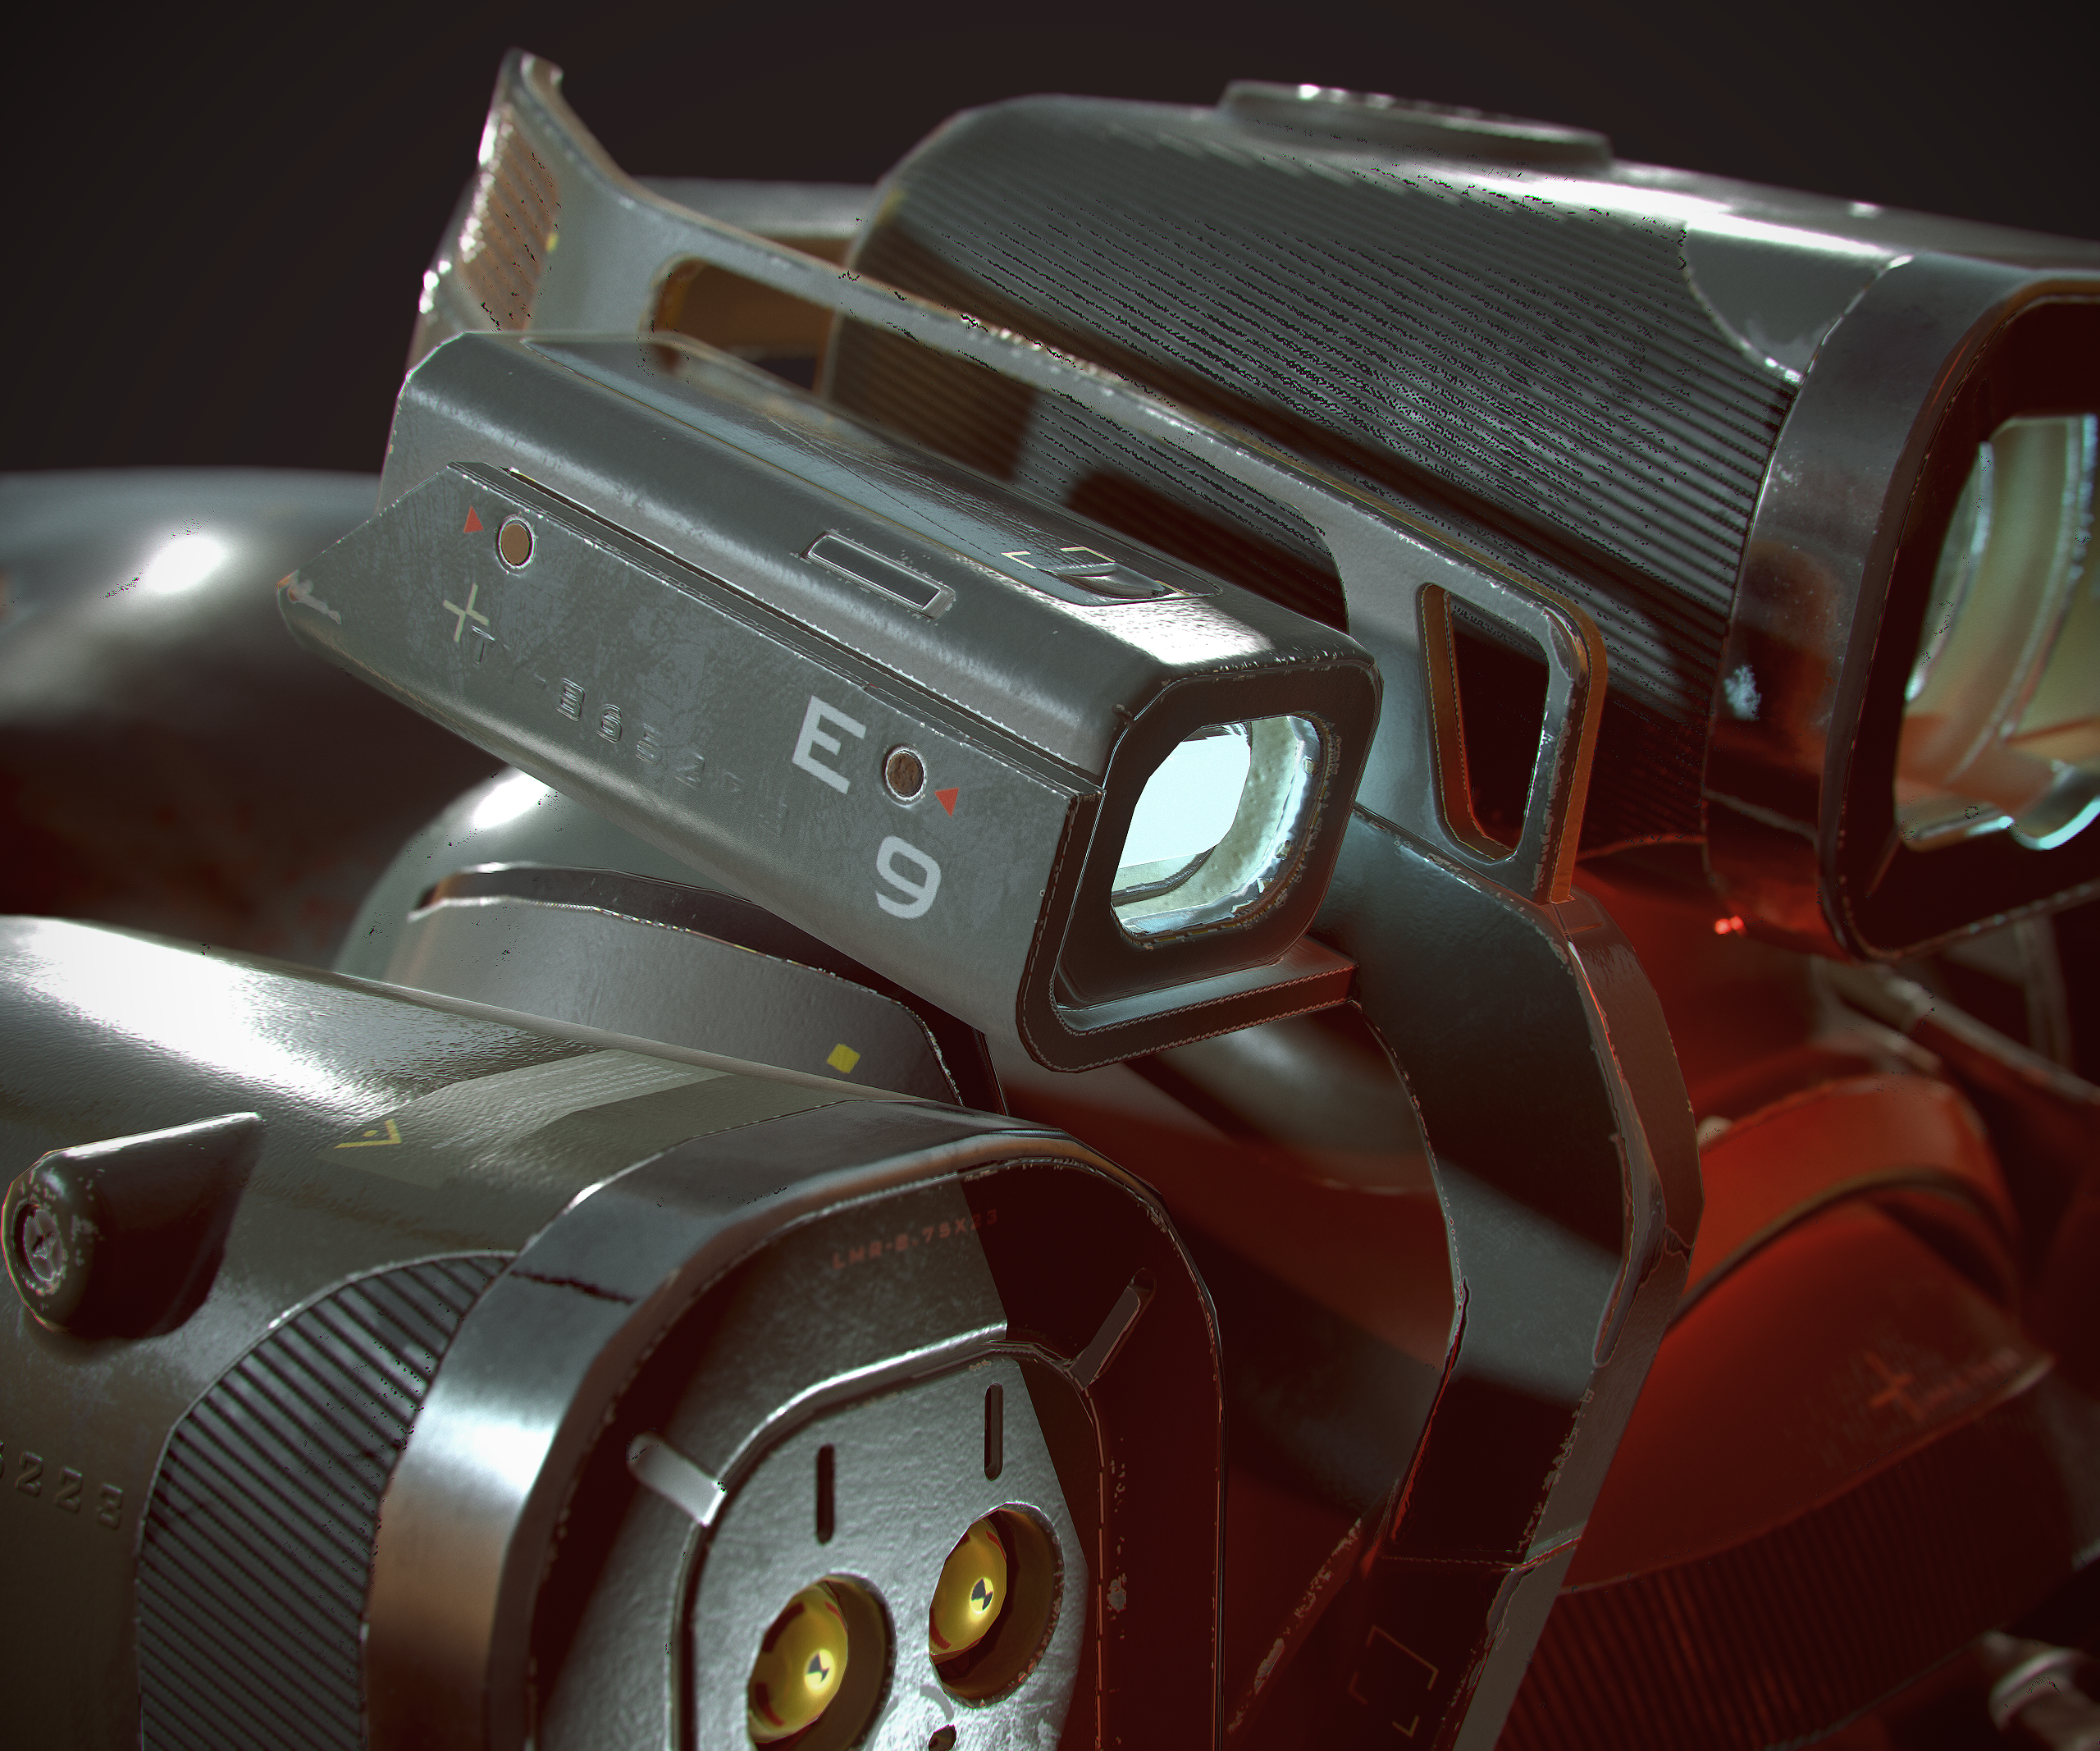 Retro weapons [ VR art ] — polycount